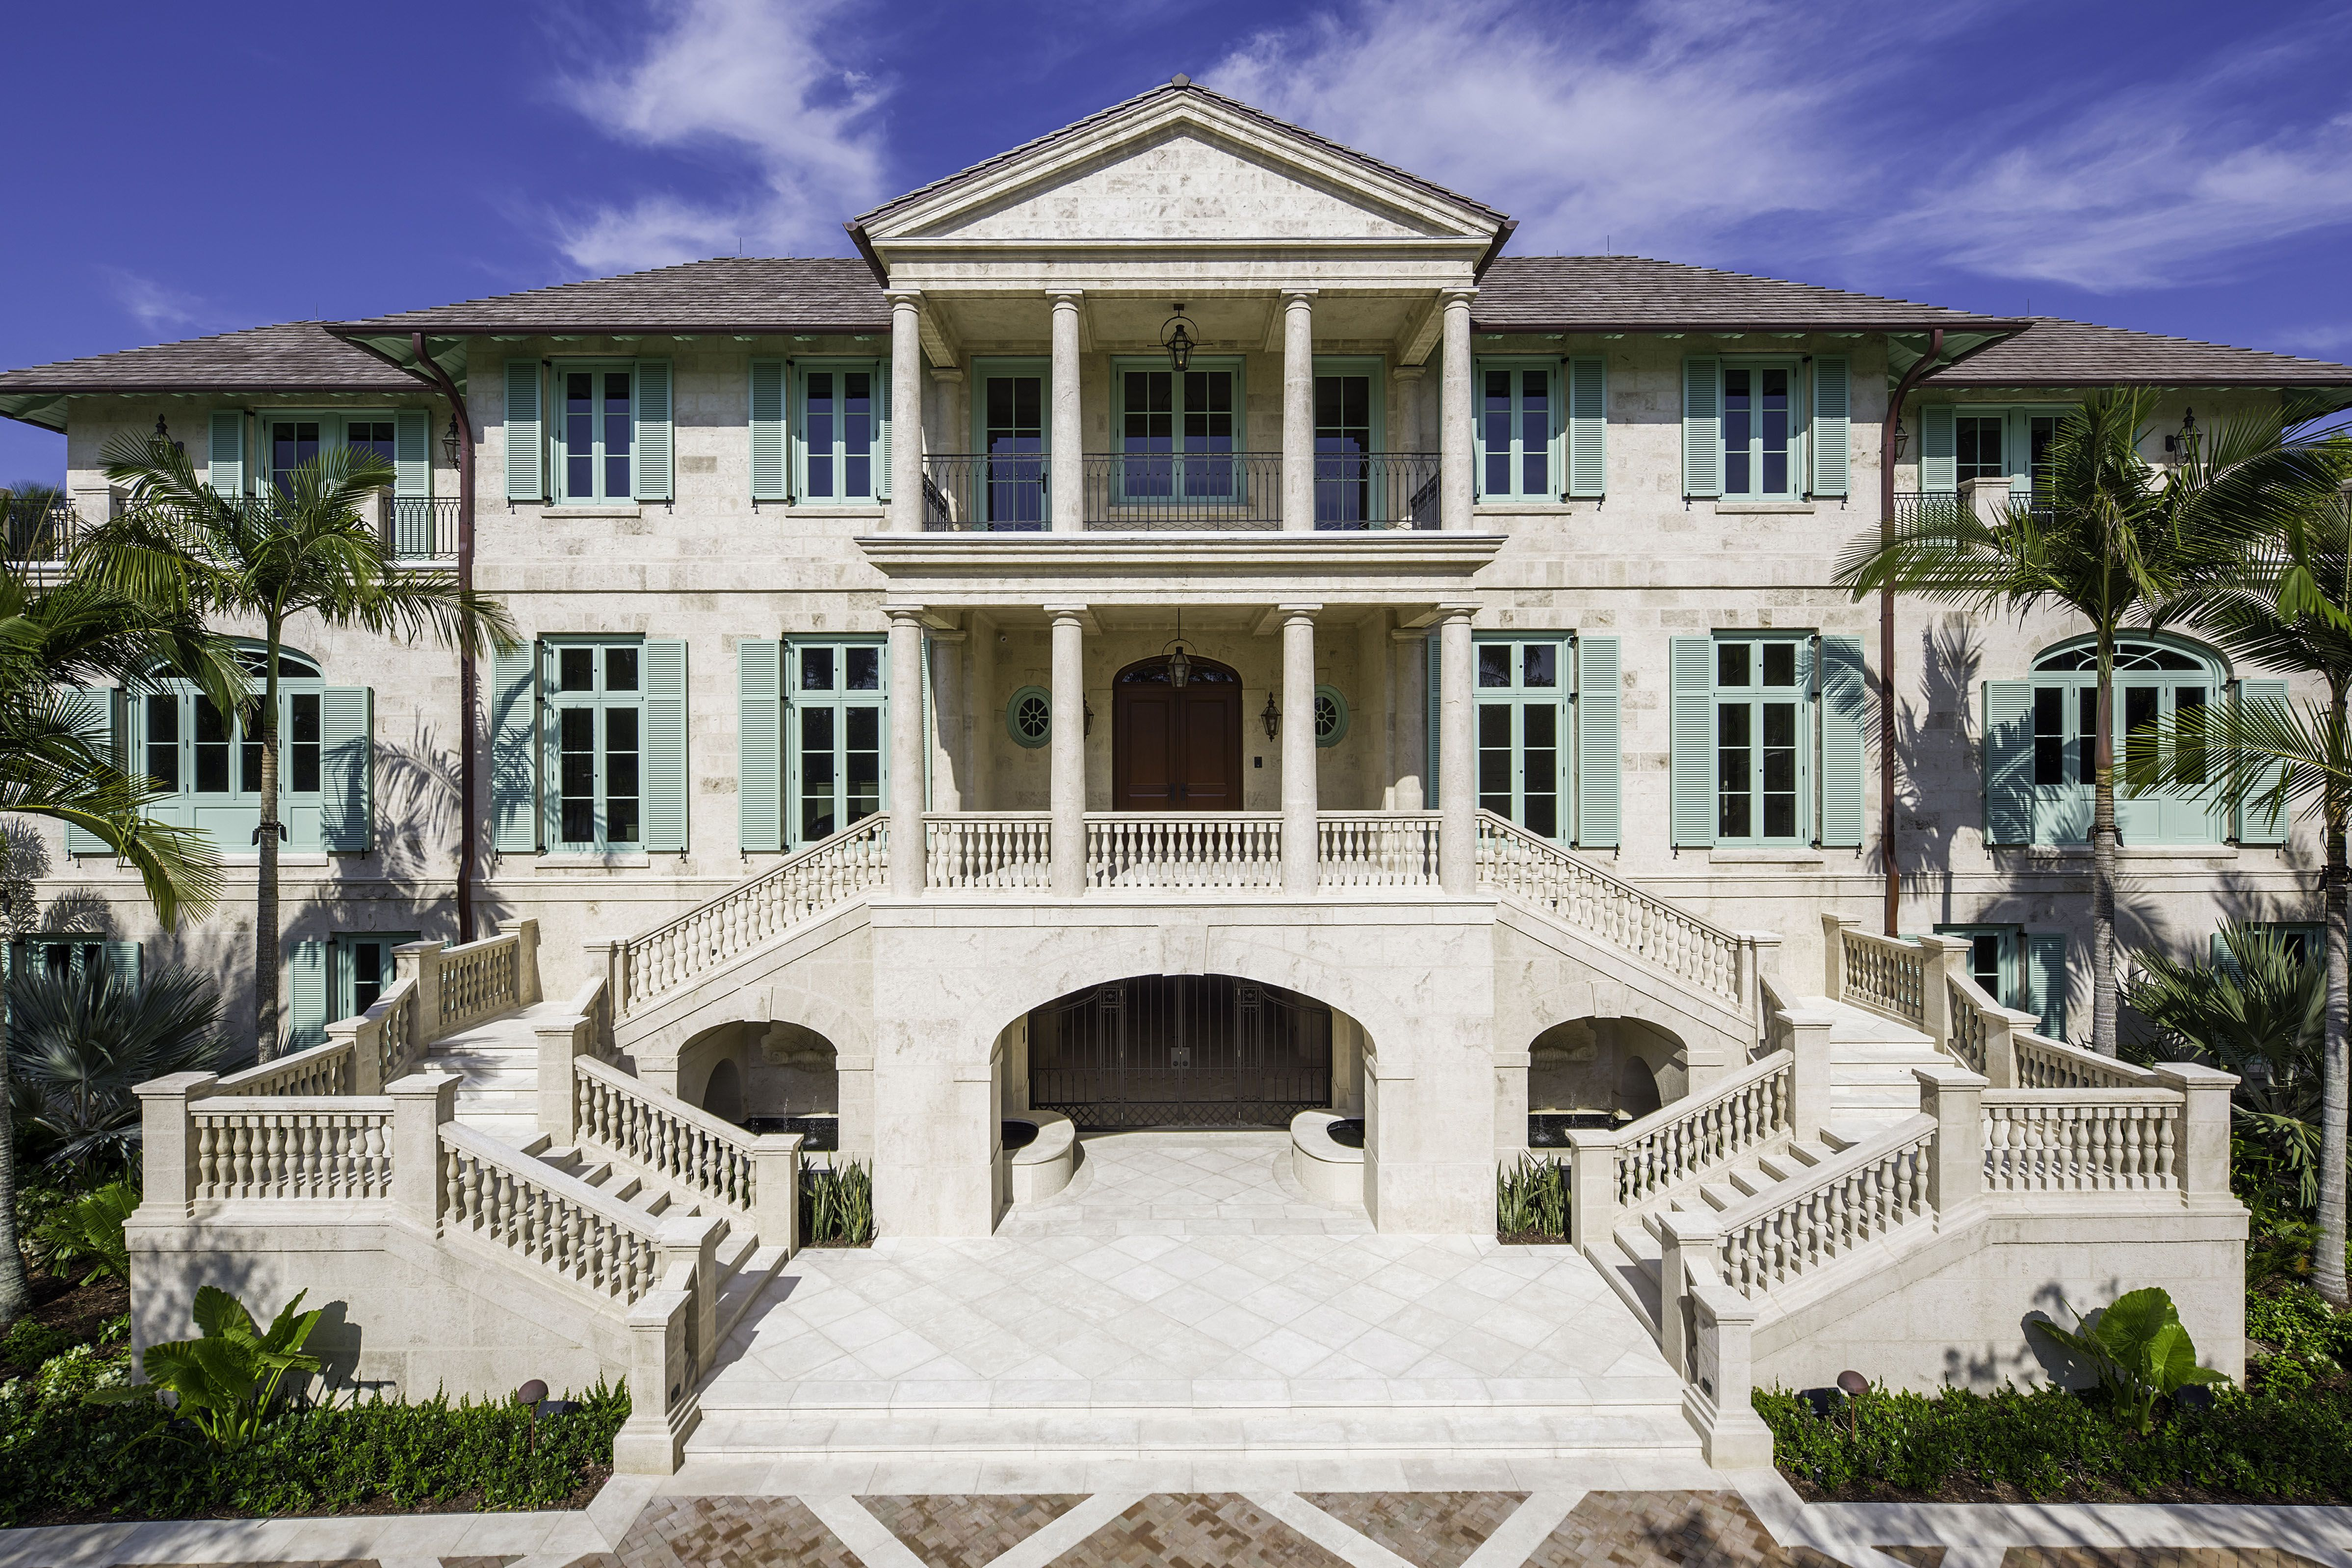 Palatial Waterfront Estate In South Florida By Harrison Design Harrison Design British Colonial Mansions Homes